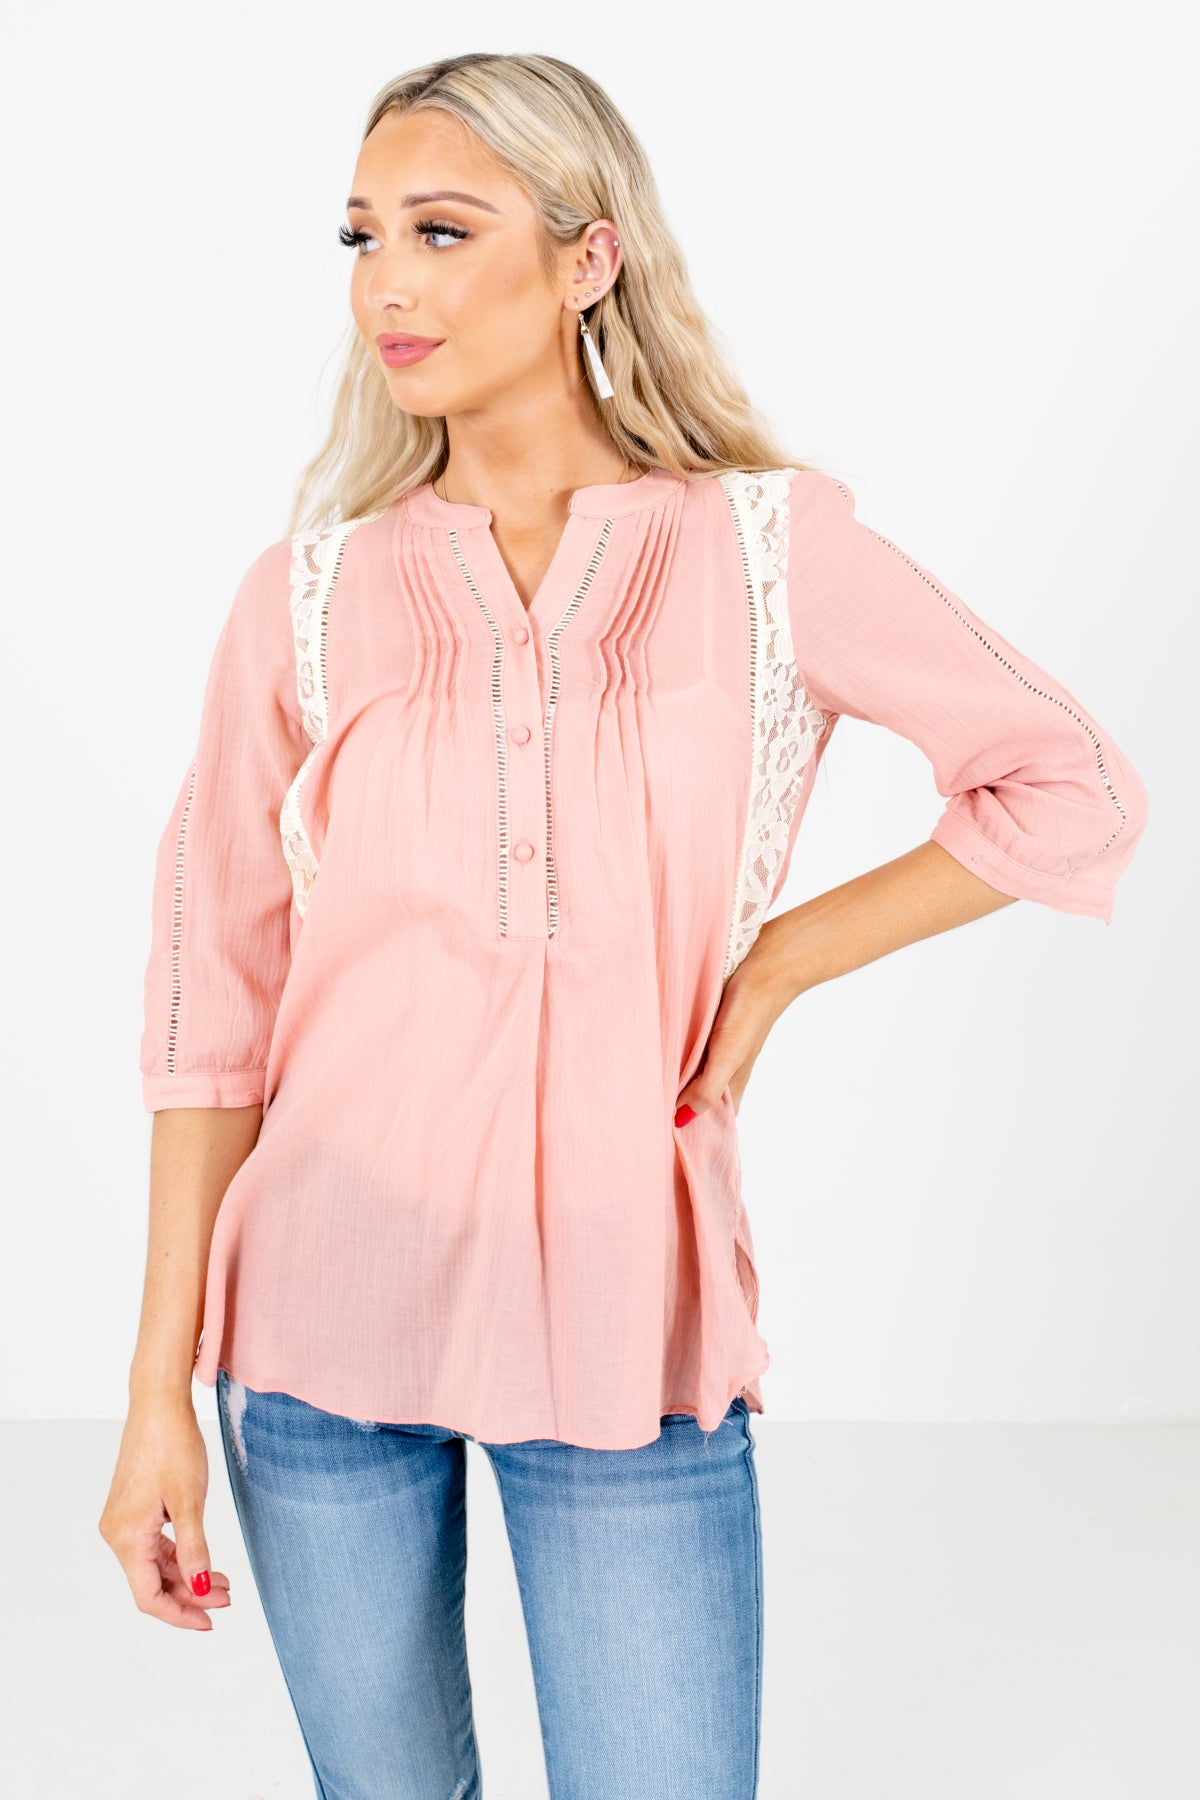 Pink Button-Up Neckline Boutique Shirts for Women